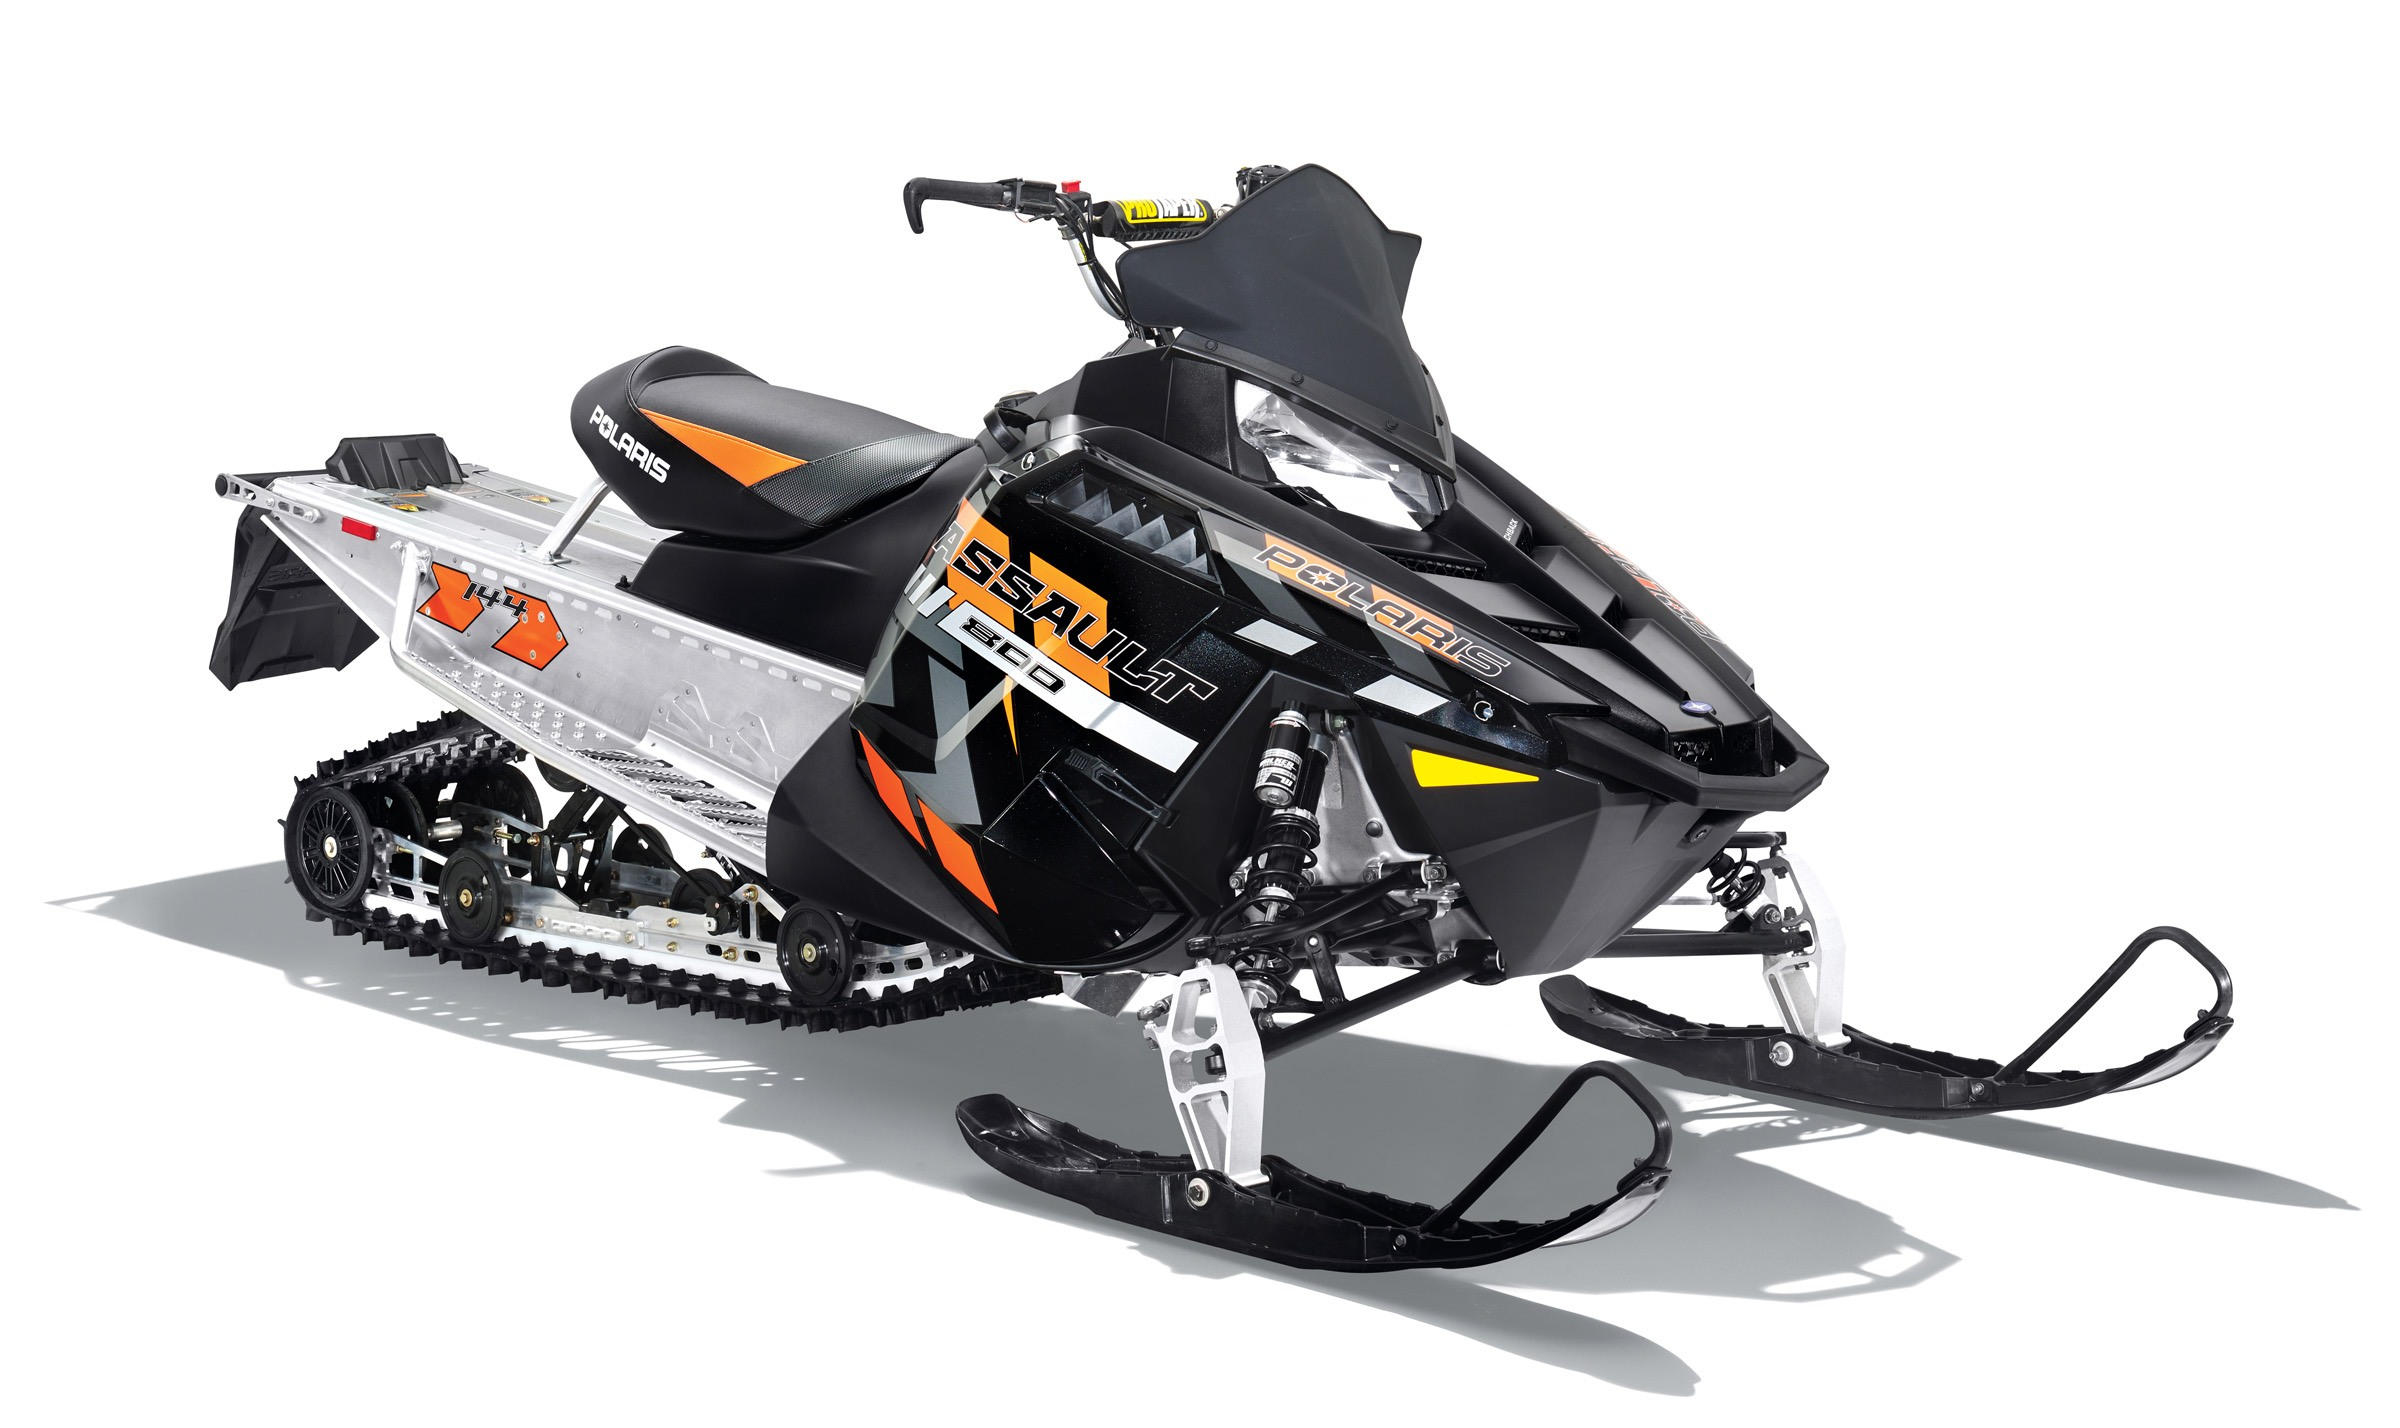 2016 Polaris 800 SWITCHBACK ASSAULT144 in Lake Mills, Iowa